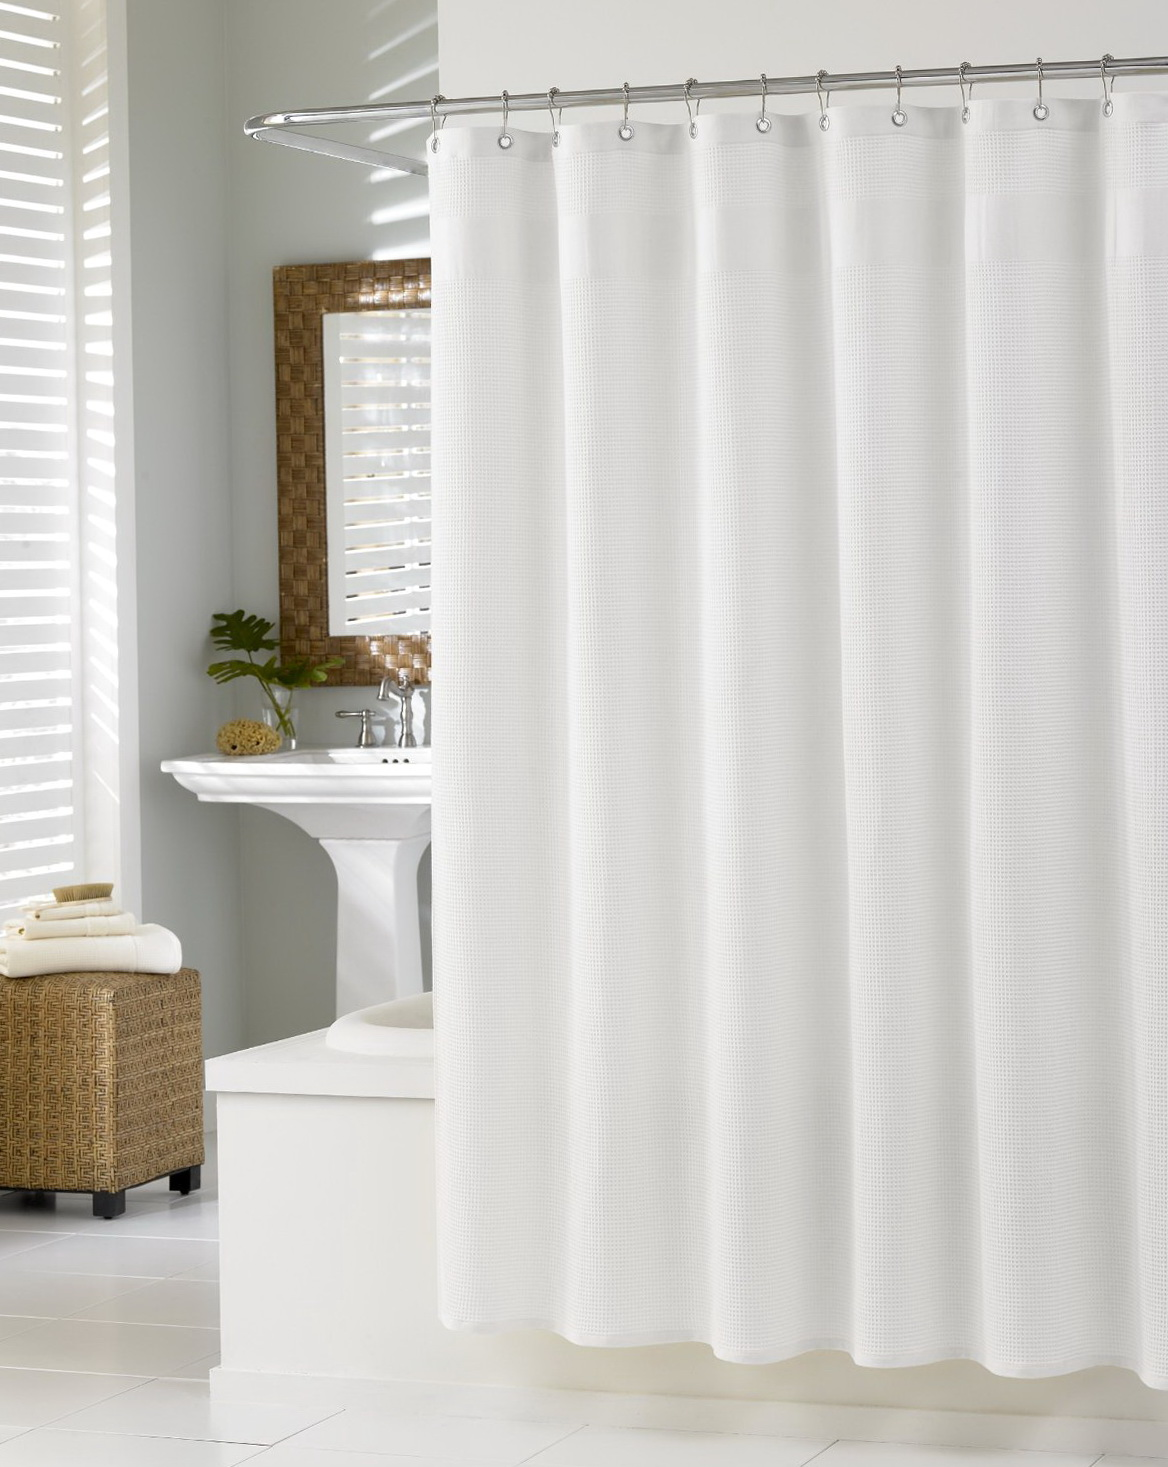 Shower Curtain Liners For Shower Stalls